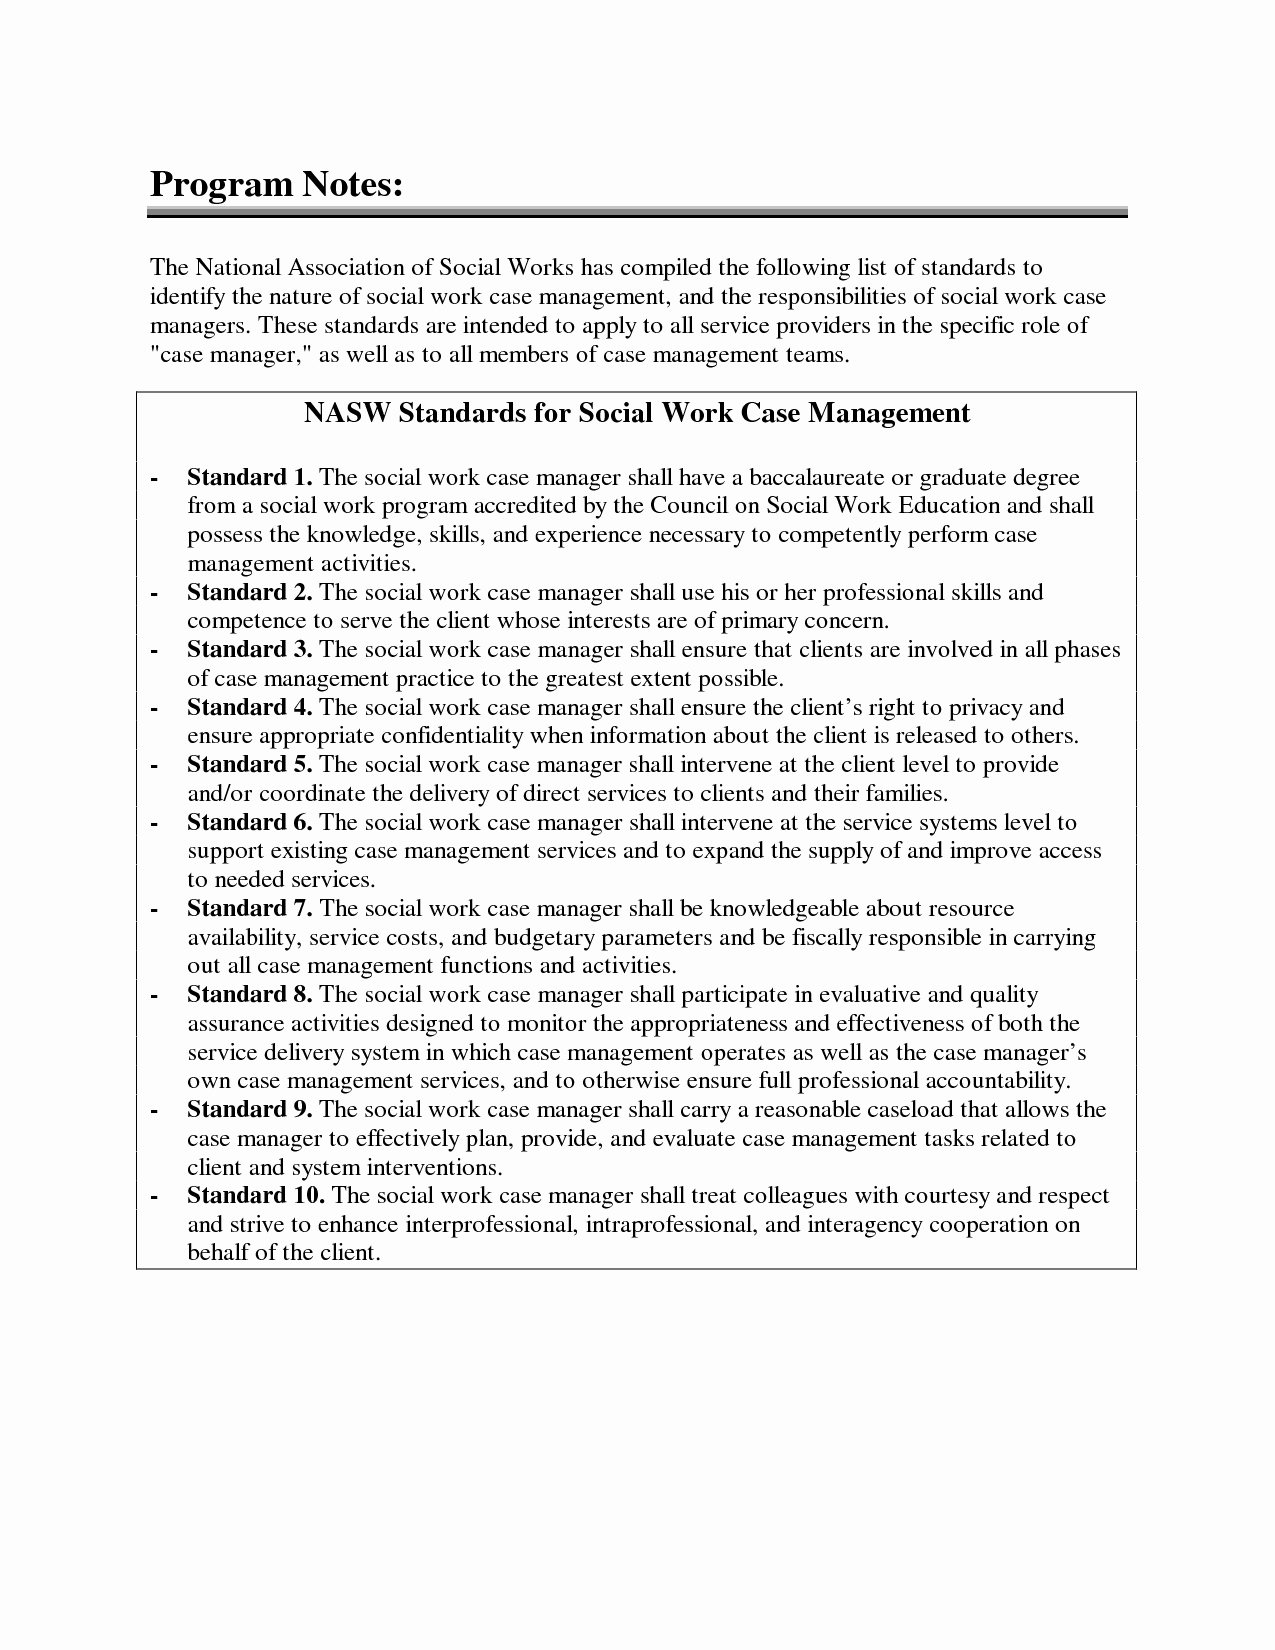 Case Management Notes Template Best Of Best S Of social Work Case Examples social Work